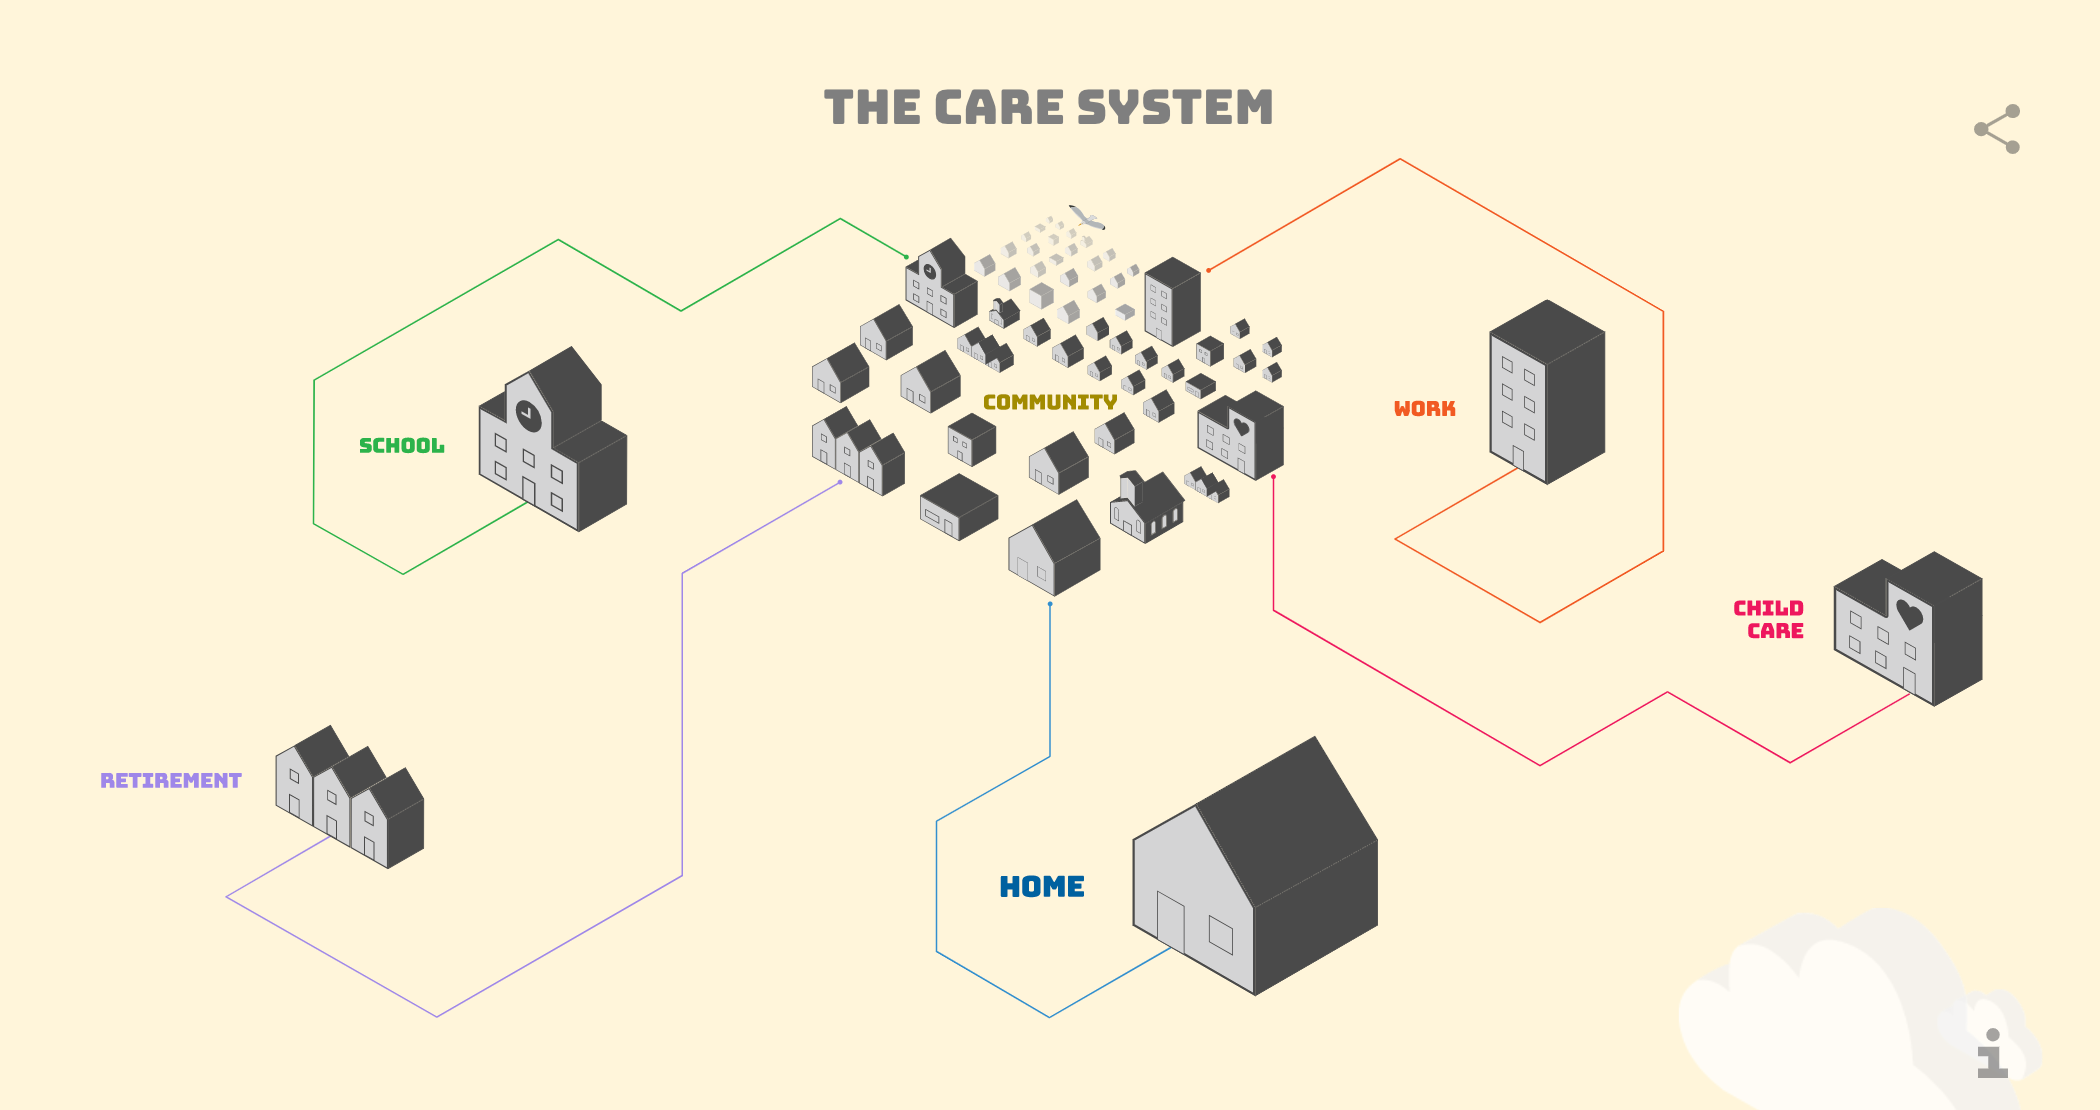 The Care System